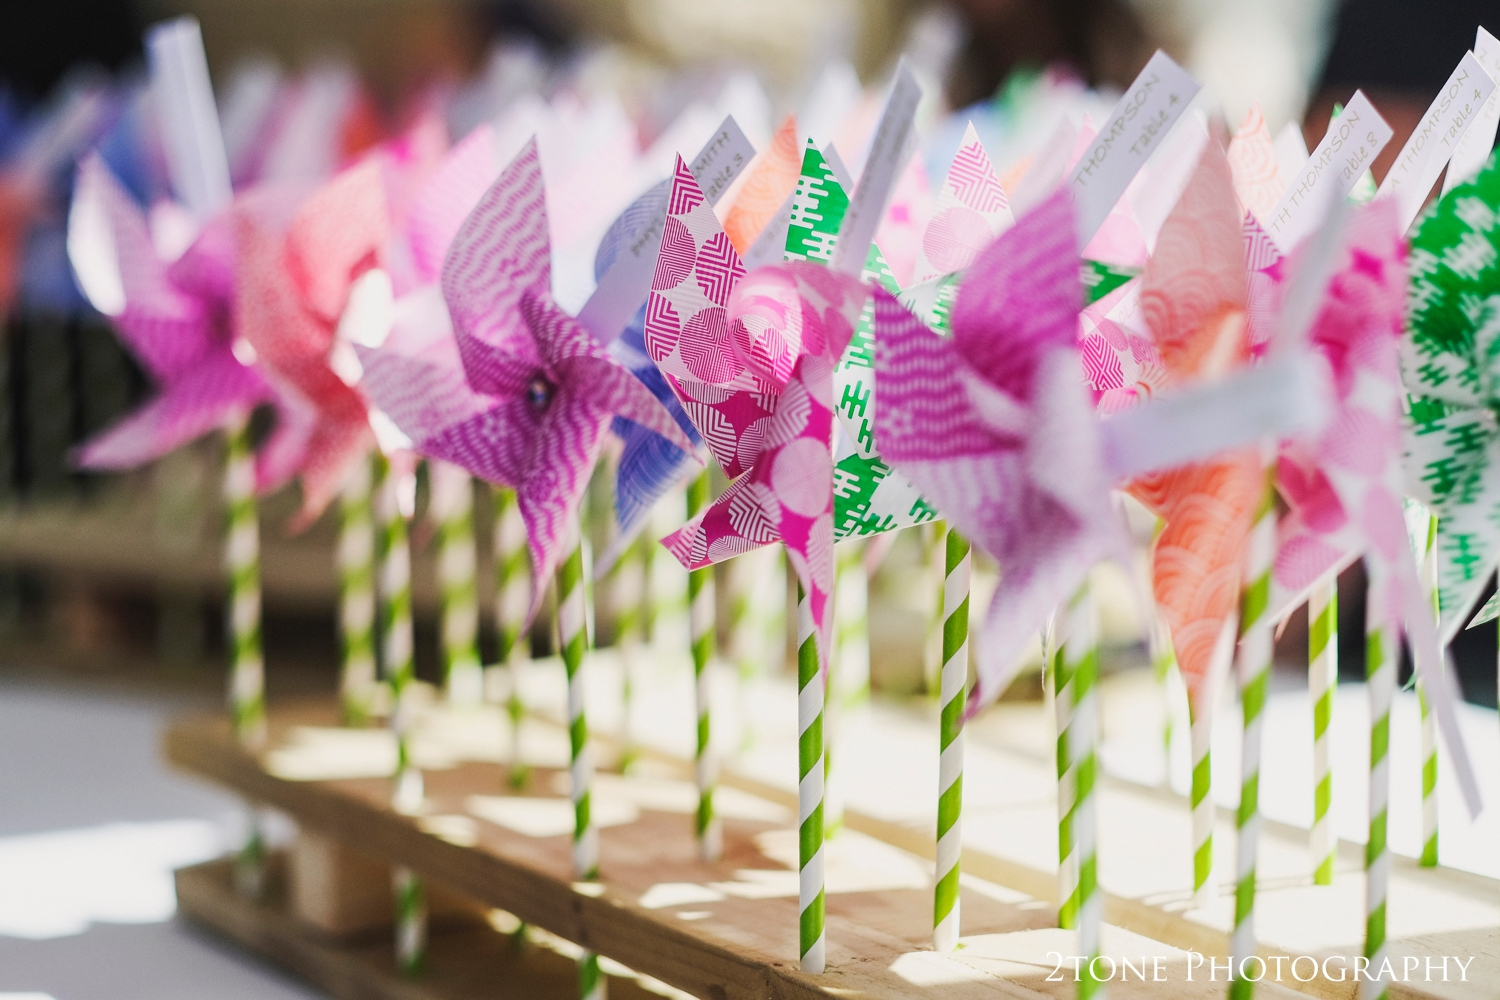 I loved the cute windmill favors